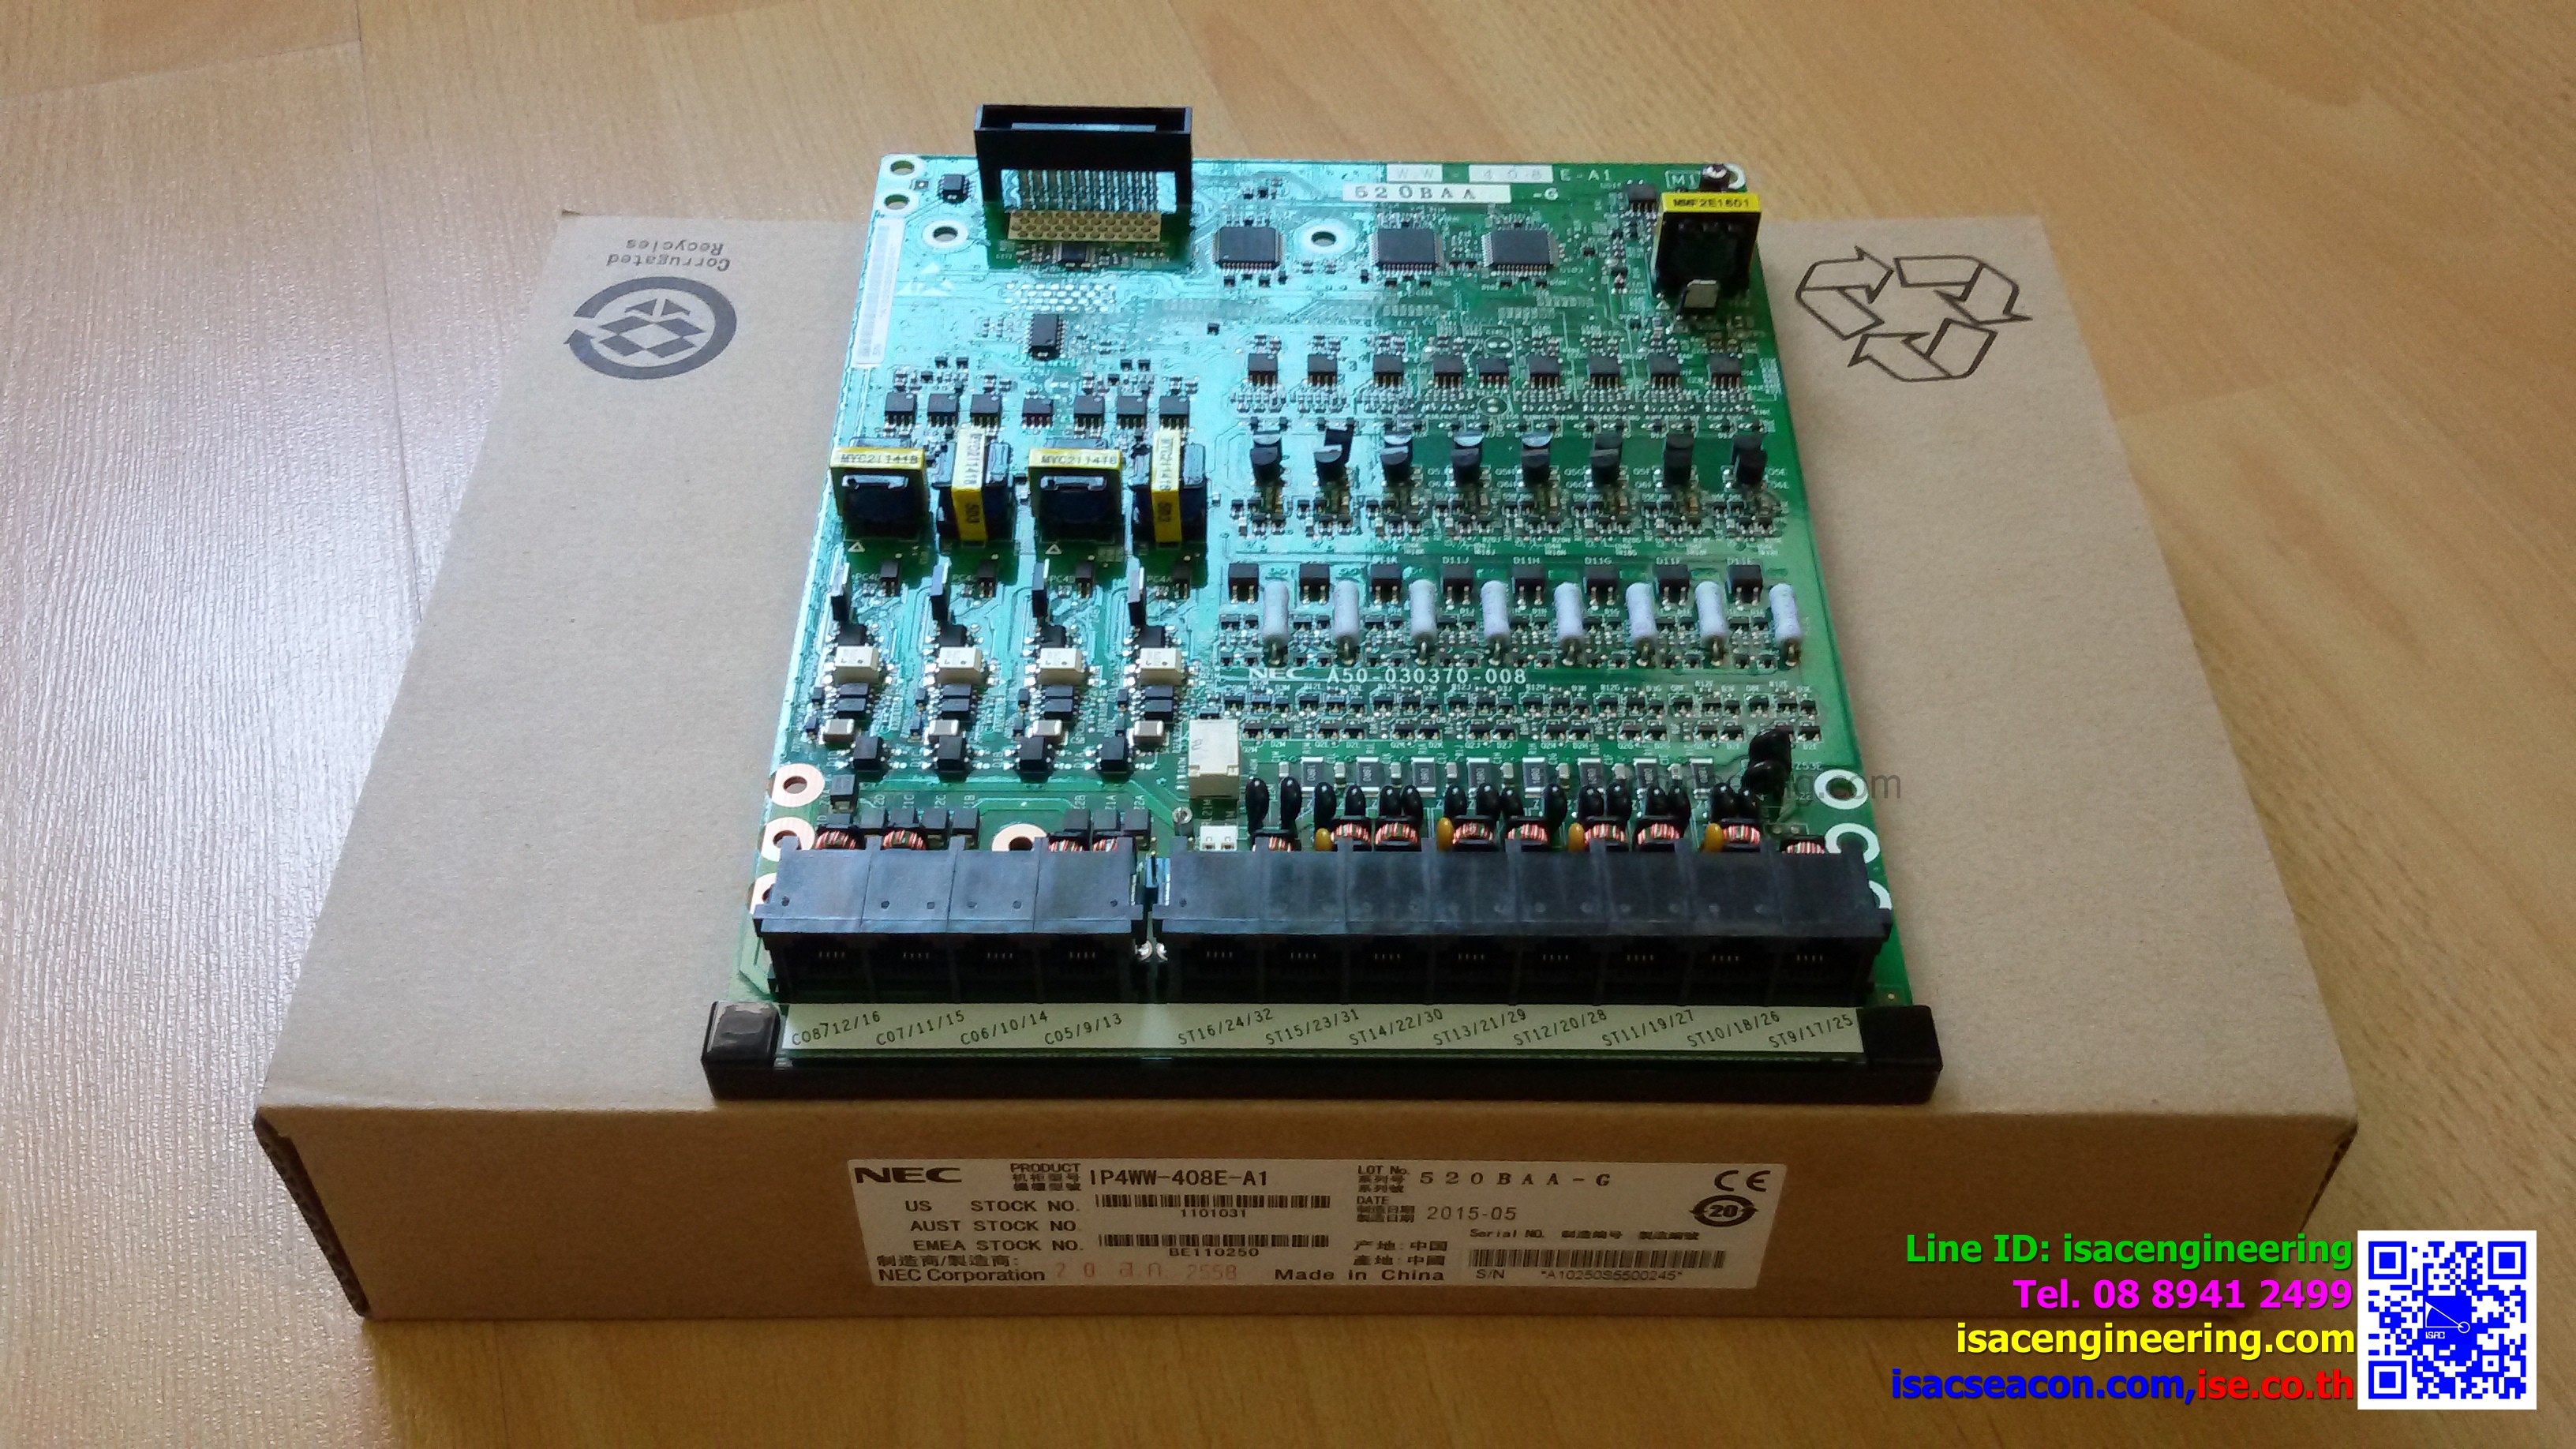 IP4WW-408E-A1 , (4 Analog Trunks+ 8 Hybrid Extensions Card )